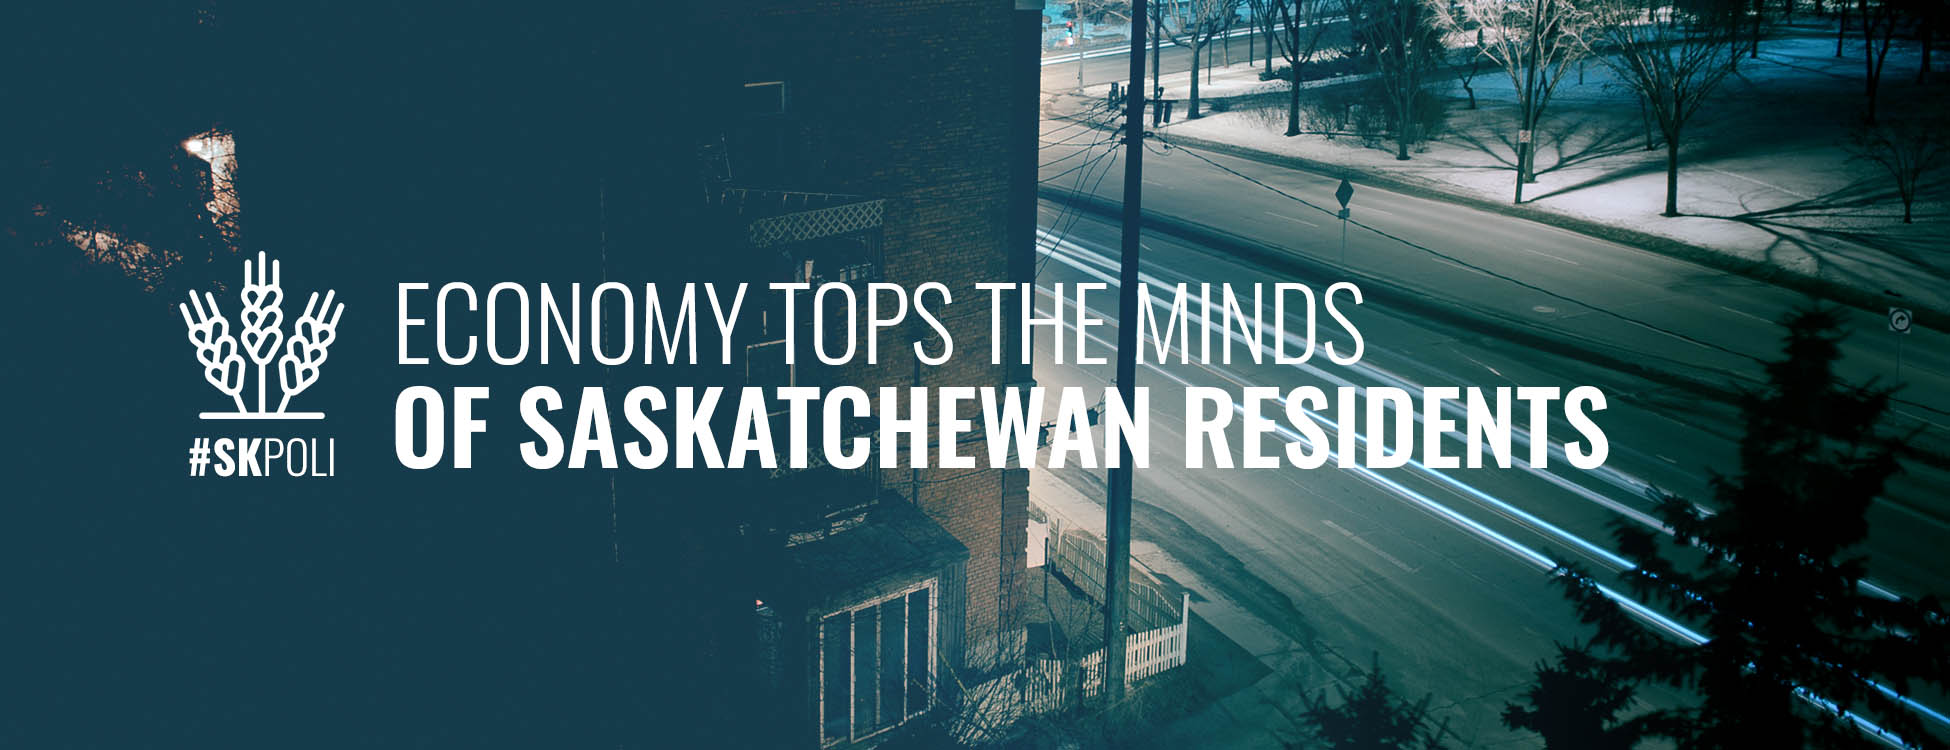 economy-tops-minds-saskatchewan-residents-skpoli